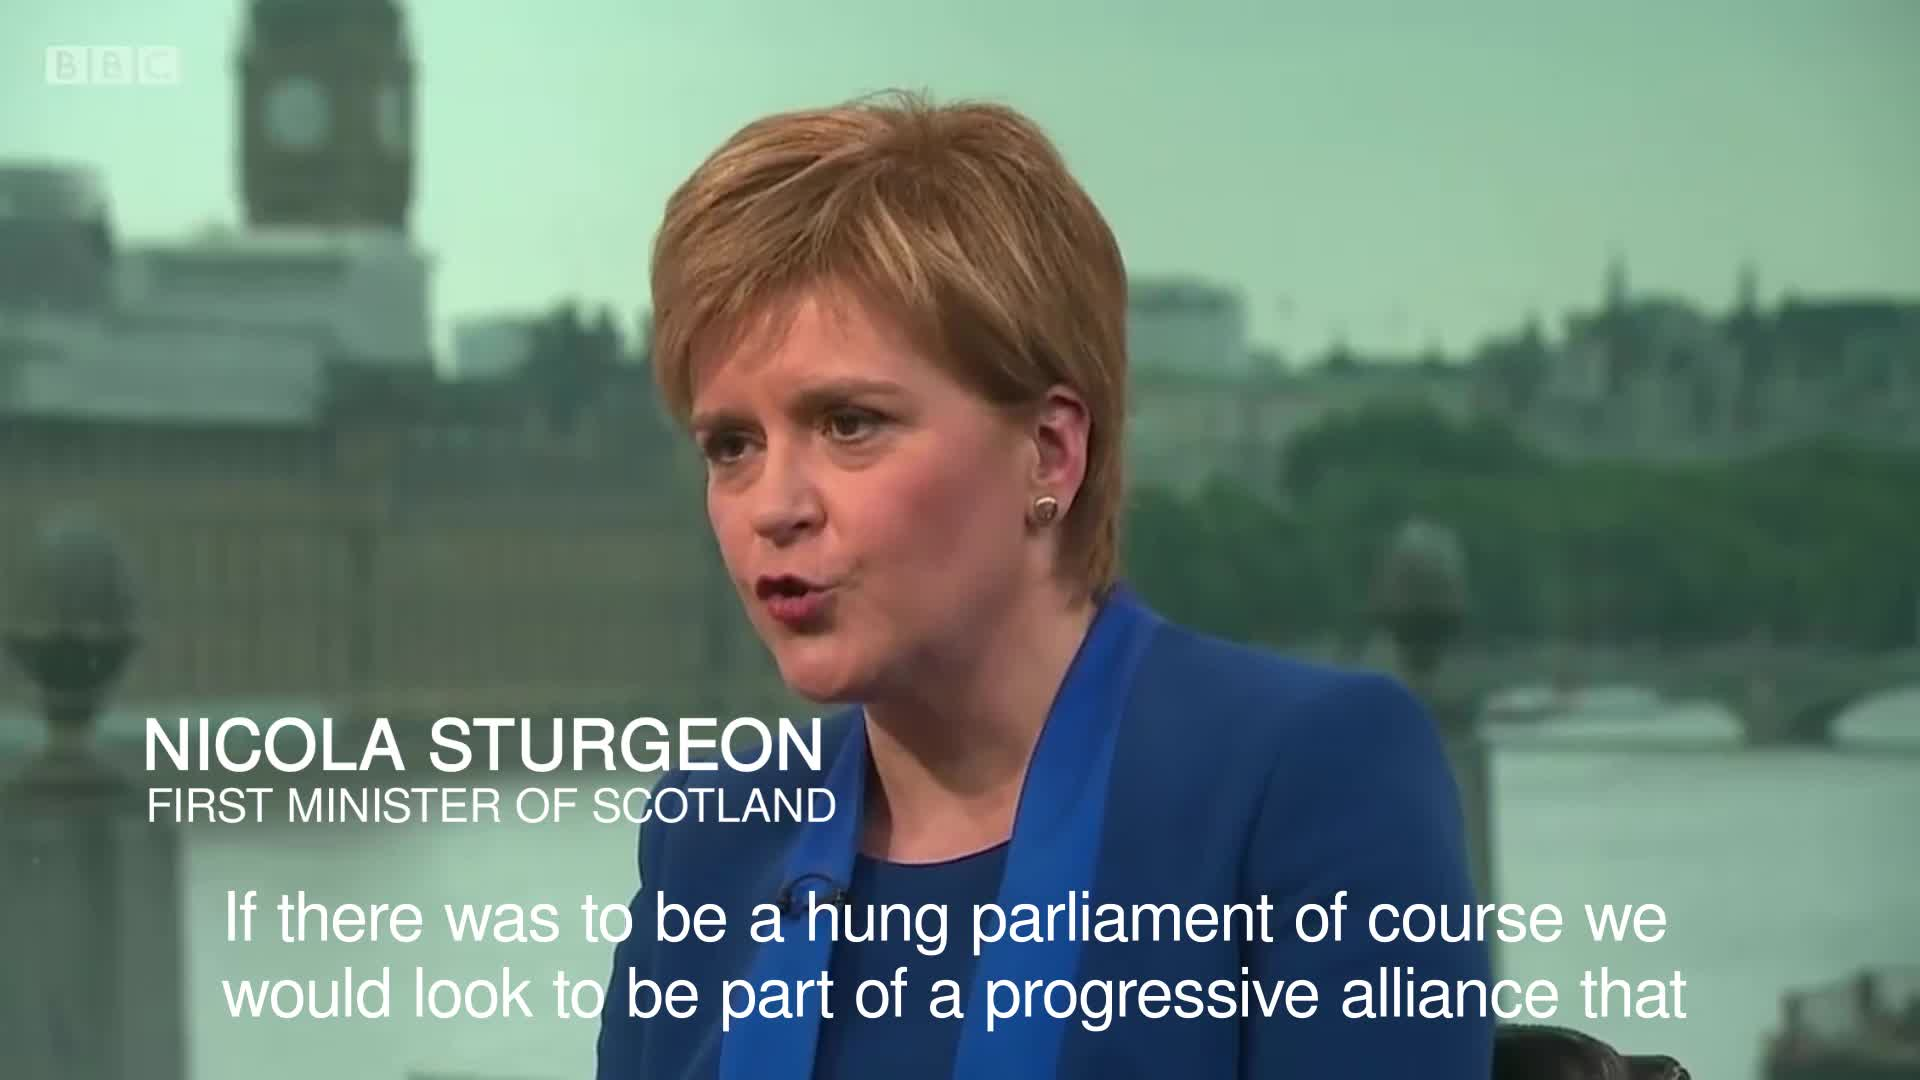 SNP would 'look to be part of progressive alliance' in hung parliament